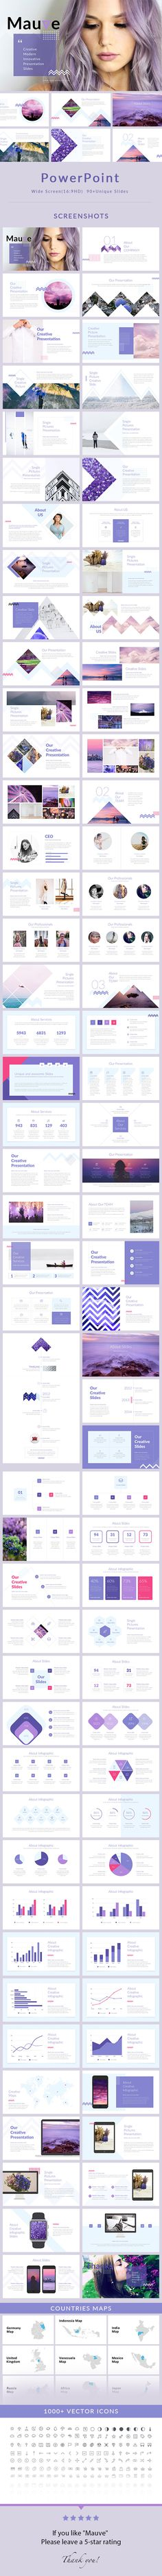 Mauve - #PowerPoint Presentation Template - Creative PowerPoint Templates Download here: https://graphicriver.net/item/mauve-powerpoint-presentation-template/19941904?ref=alena994